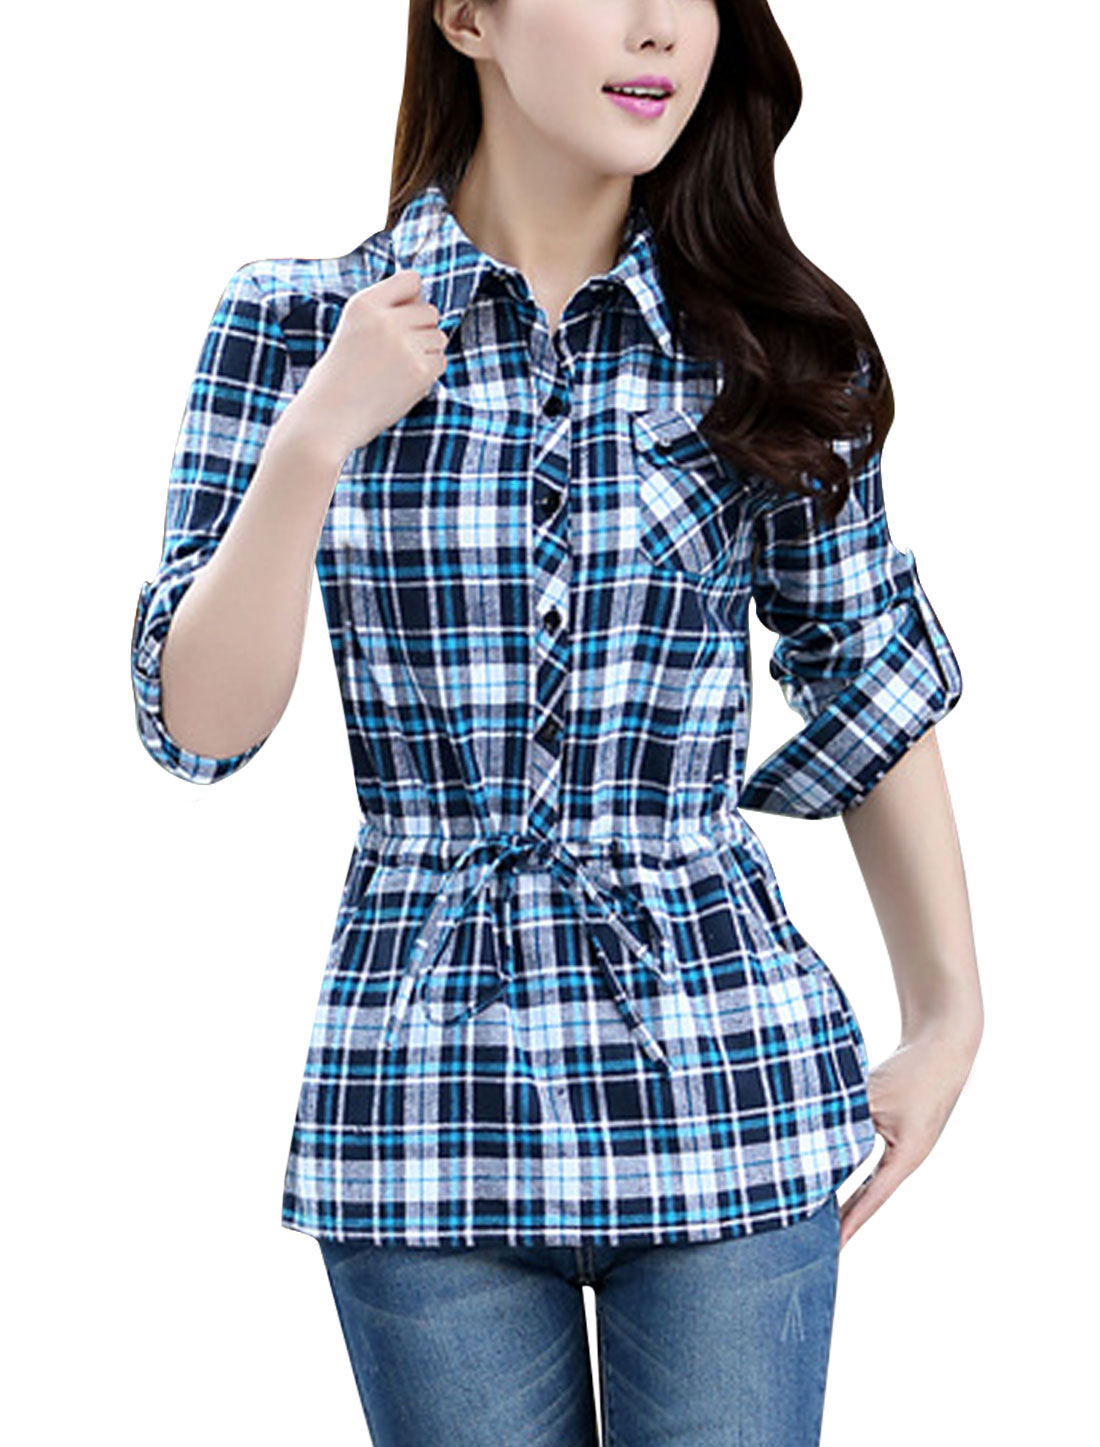 Lady Plaids Pattern Two Front Pockets Drawstring Casual Shirt Blue Navy Blue L